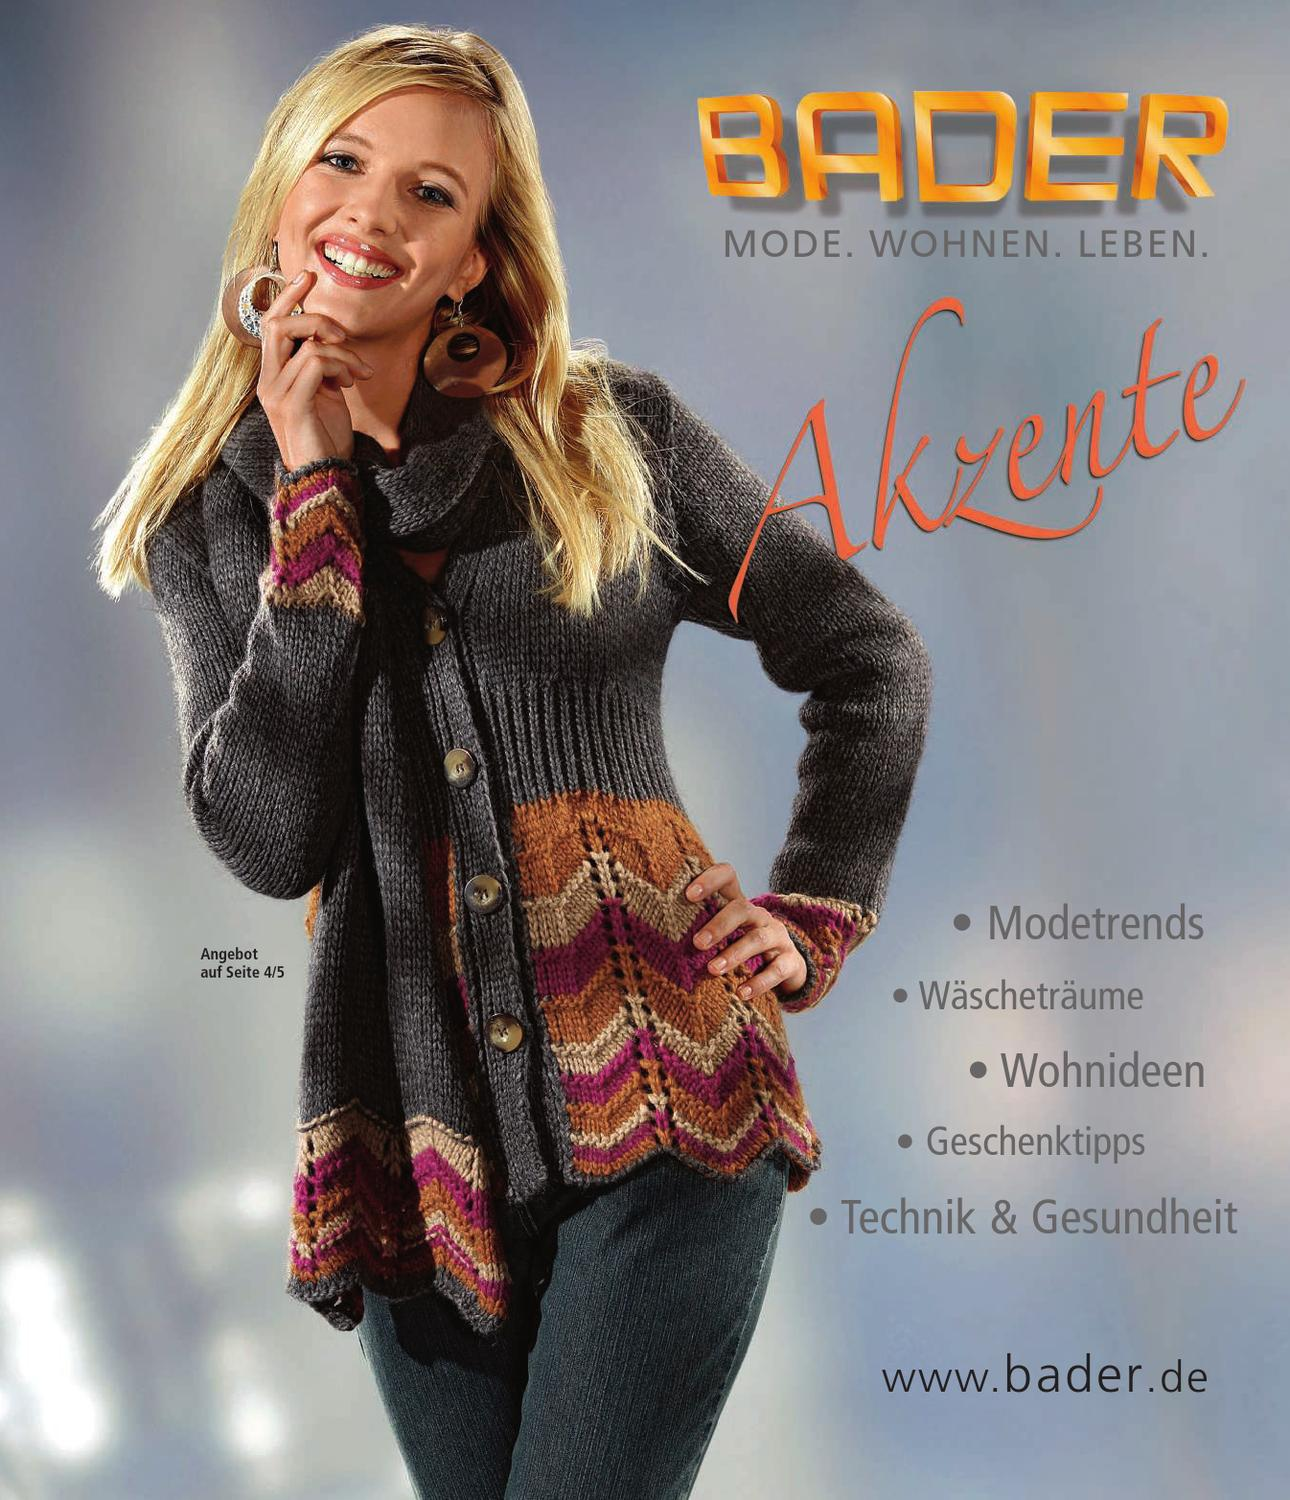 dacc29c0eda312 Bader Akzente Herbst-Winter osen-zima 2012 by Katorg World of ...